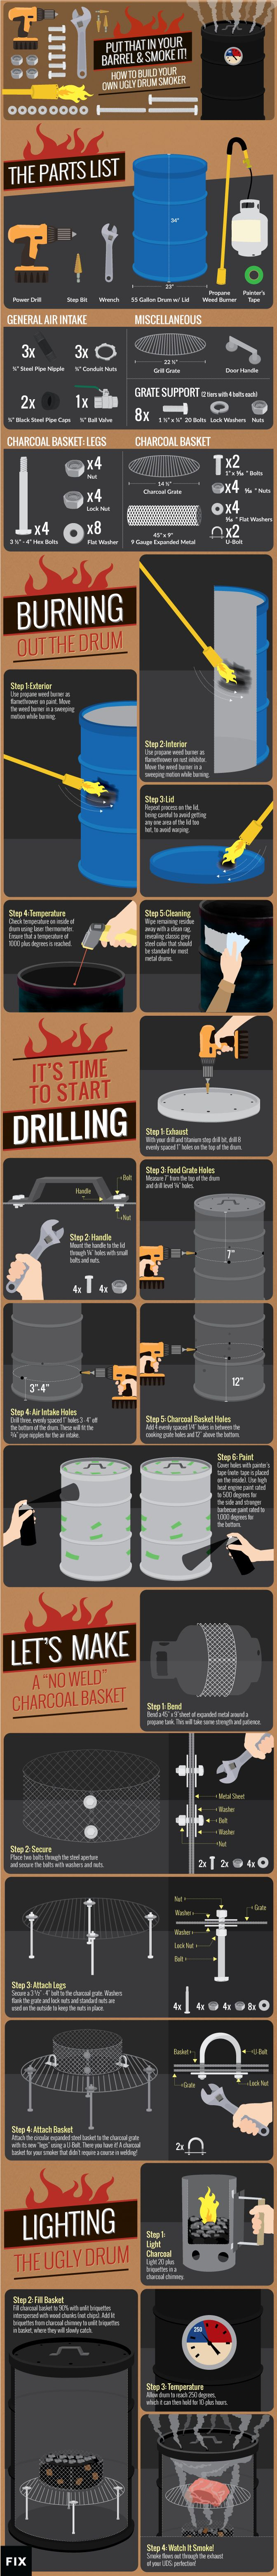 How to Build Your Own Ugly Drum Smoker - The ultimate DIY project for the backyard chef: Building your own ugly drum smoker. There are some great smokers on the market, but price tag can be hefty. So, instead of shelling out $800-900 on a smoker, you can make one for well under $200. Source: fixit.com blog